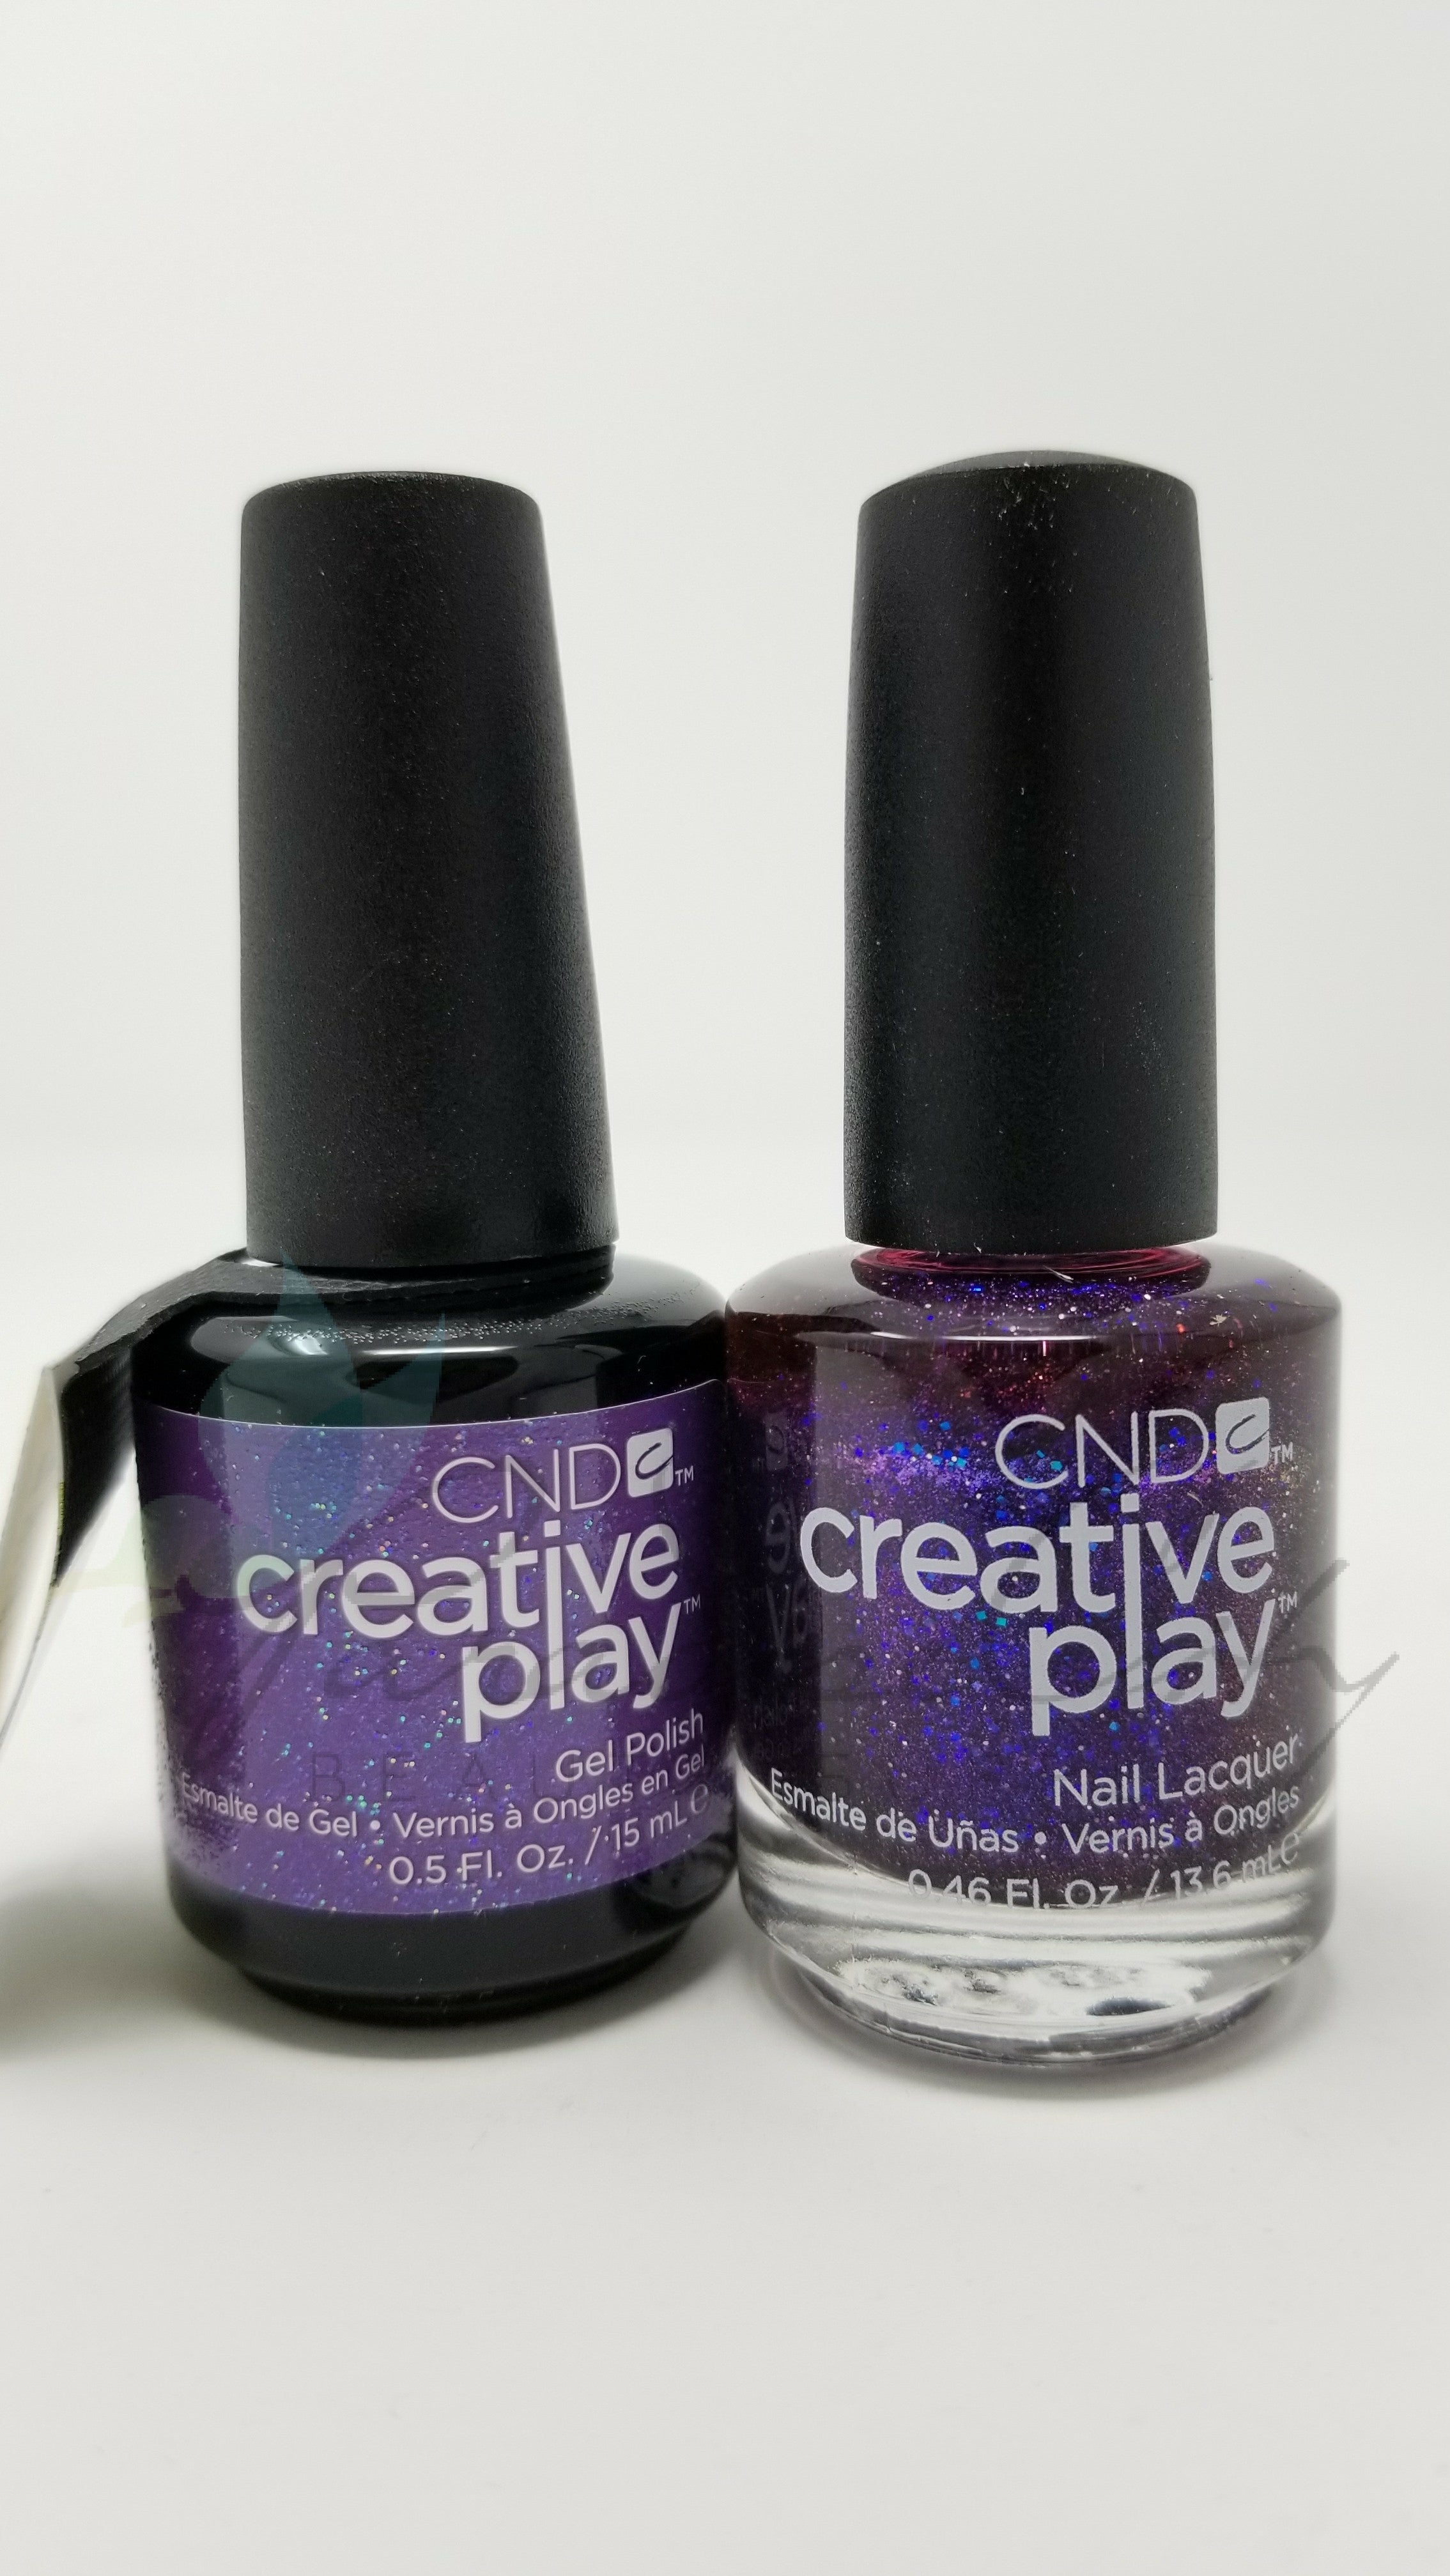 CND Creative Play Matching Gel Polish & Nail Lacquer - #475 ...